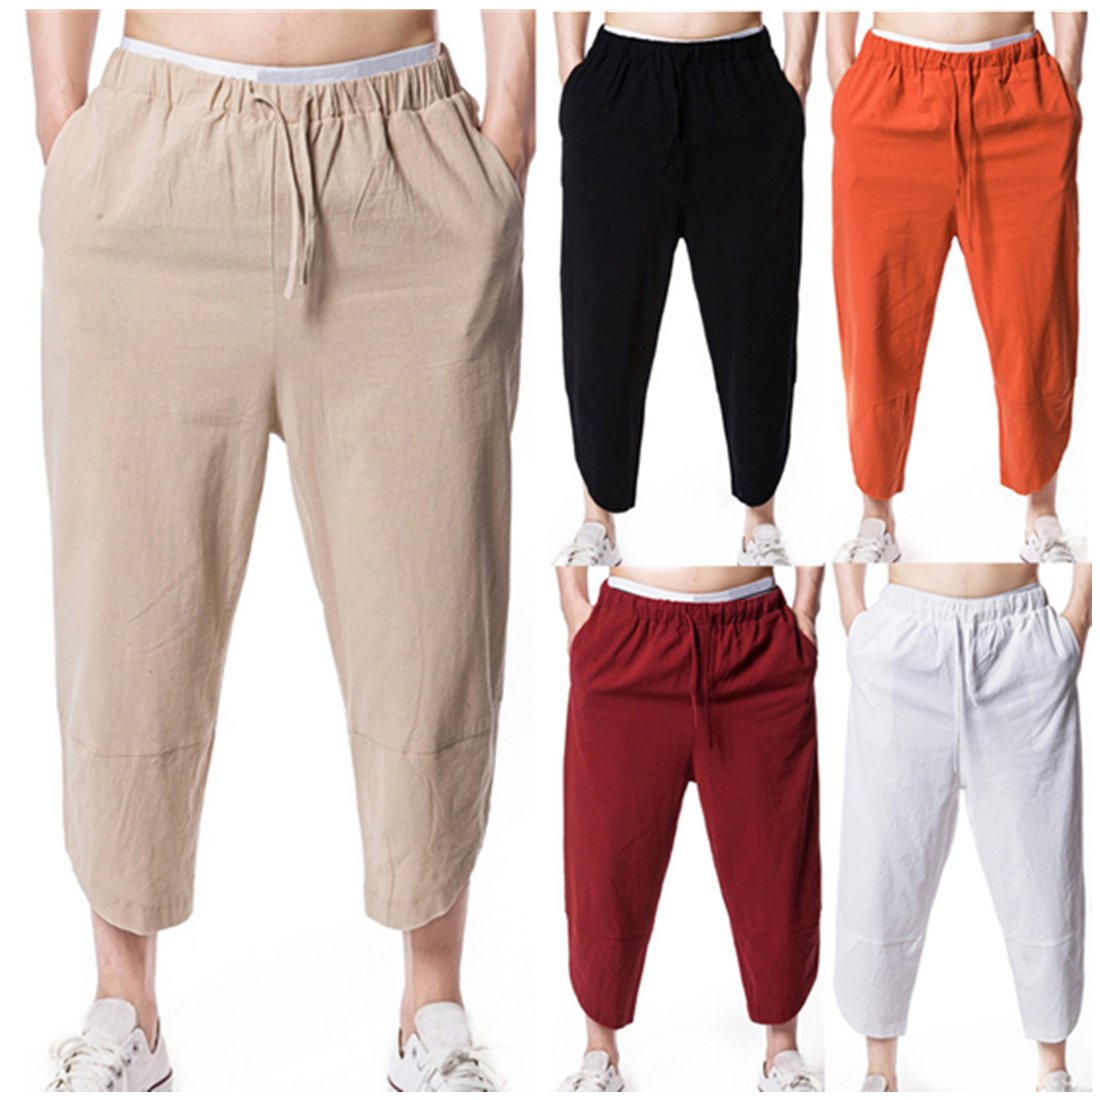 3f1b99a778d2 ❊Material Linen♥♥Men s casual harem training jogger sport short baggy pants  men s classic fit workday khaki smart flex pants mens seniors solid loose  fit ...